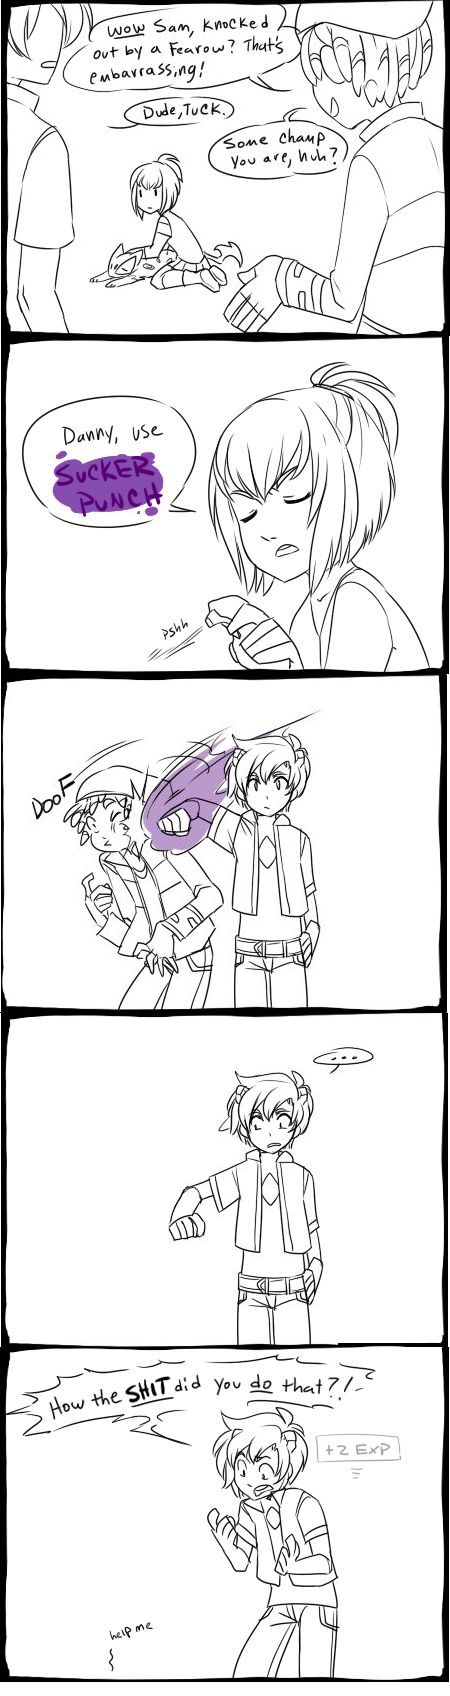 Danny Phantom Pokemon Crossover with Danny fused with a Froslass (comic by ectolime).